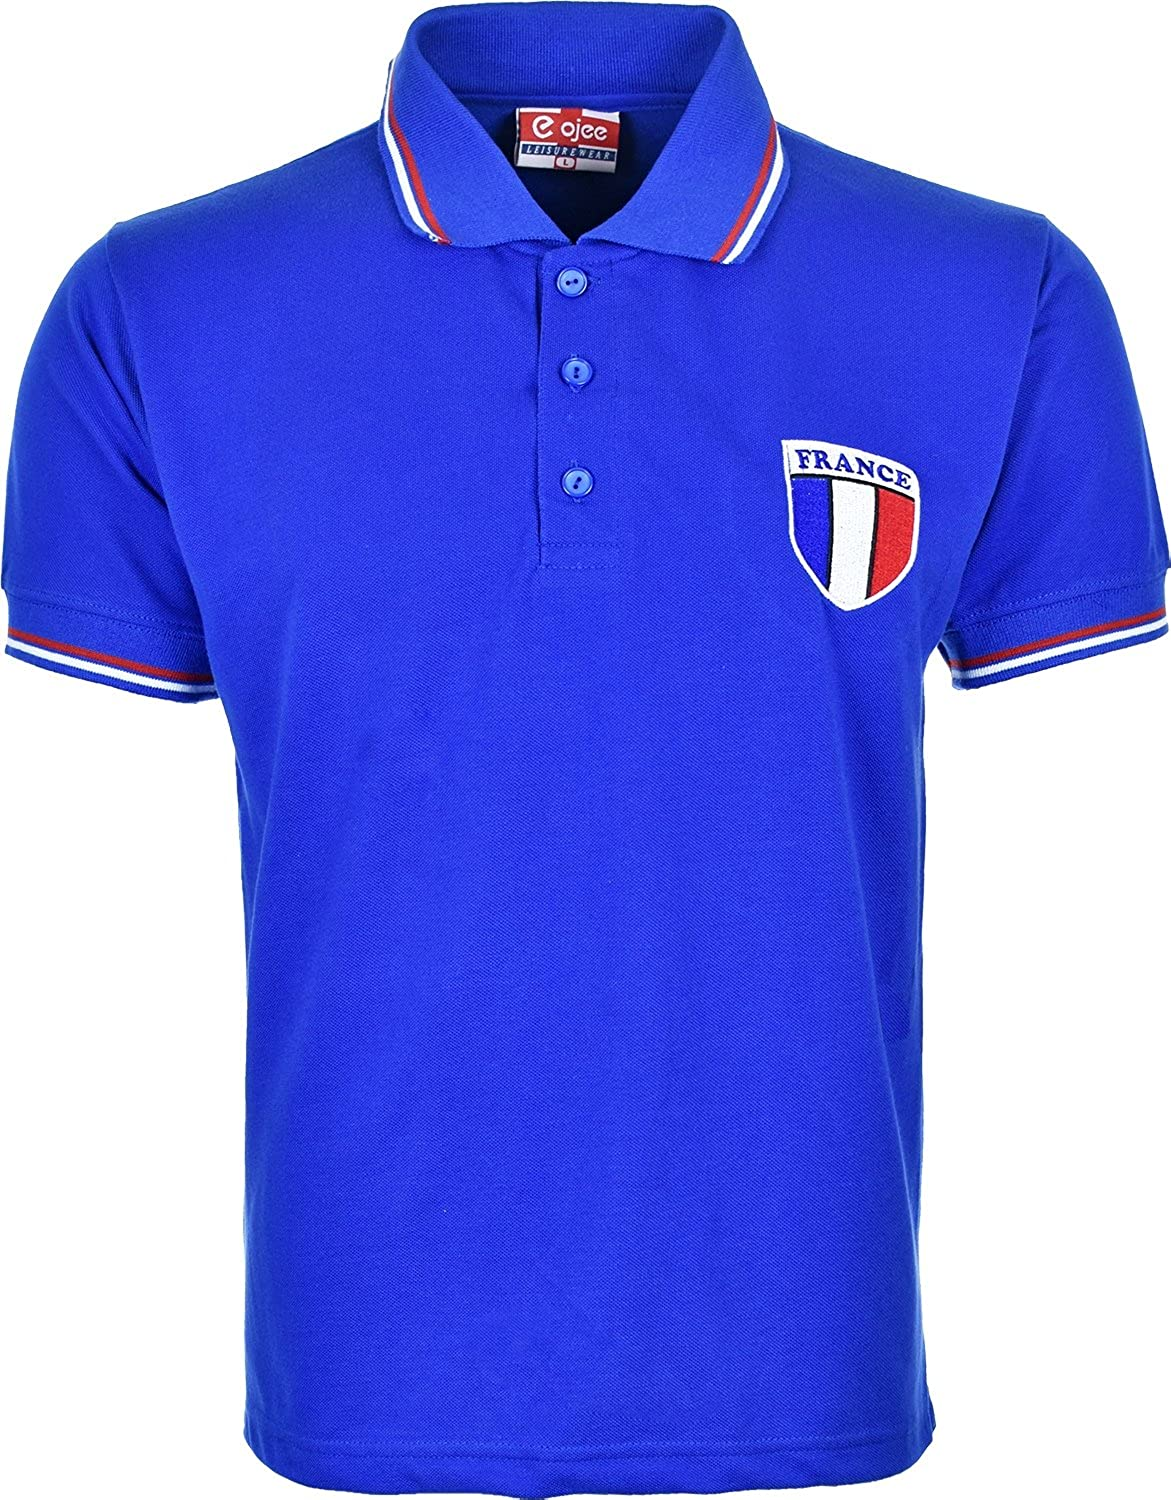 Activewear Kids Children France French World Cup Polo T Shirts Xl 7 Fashion Big Size Shirt 4xl 8 Years Clothing